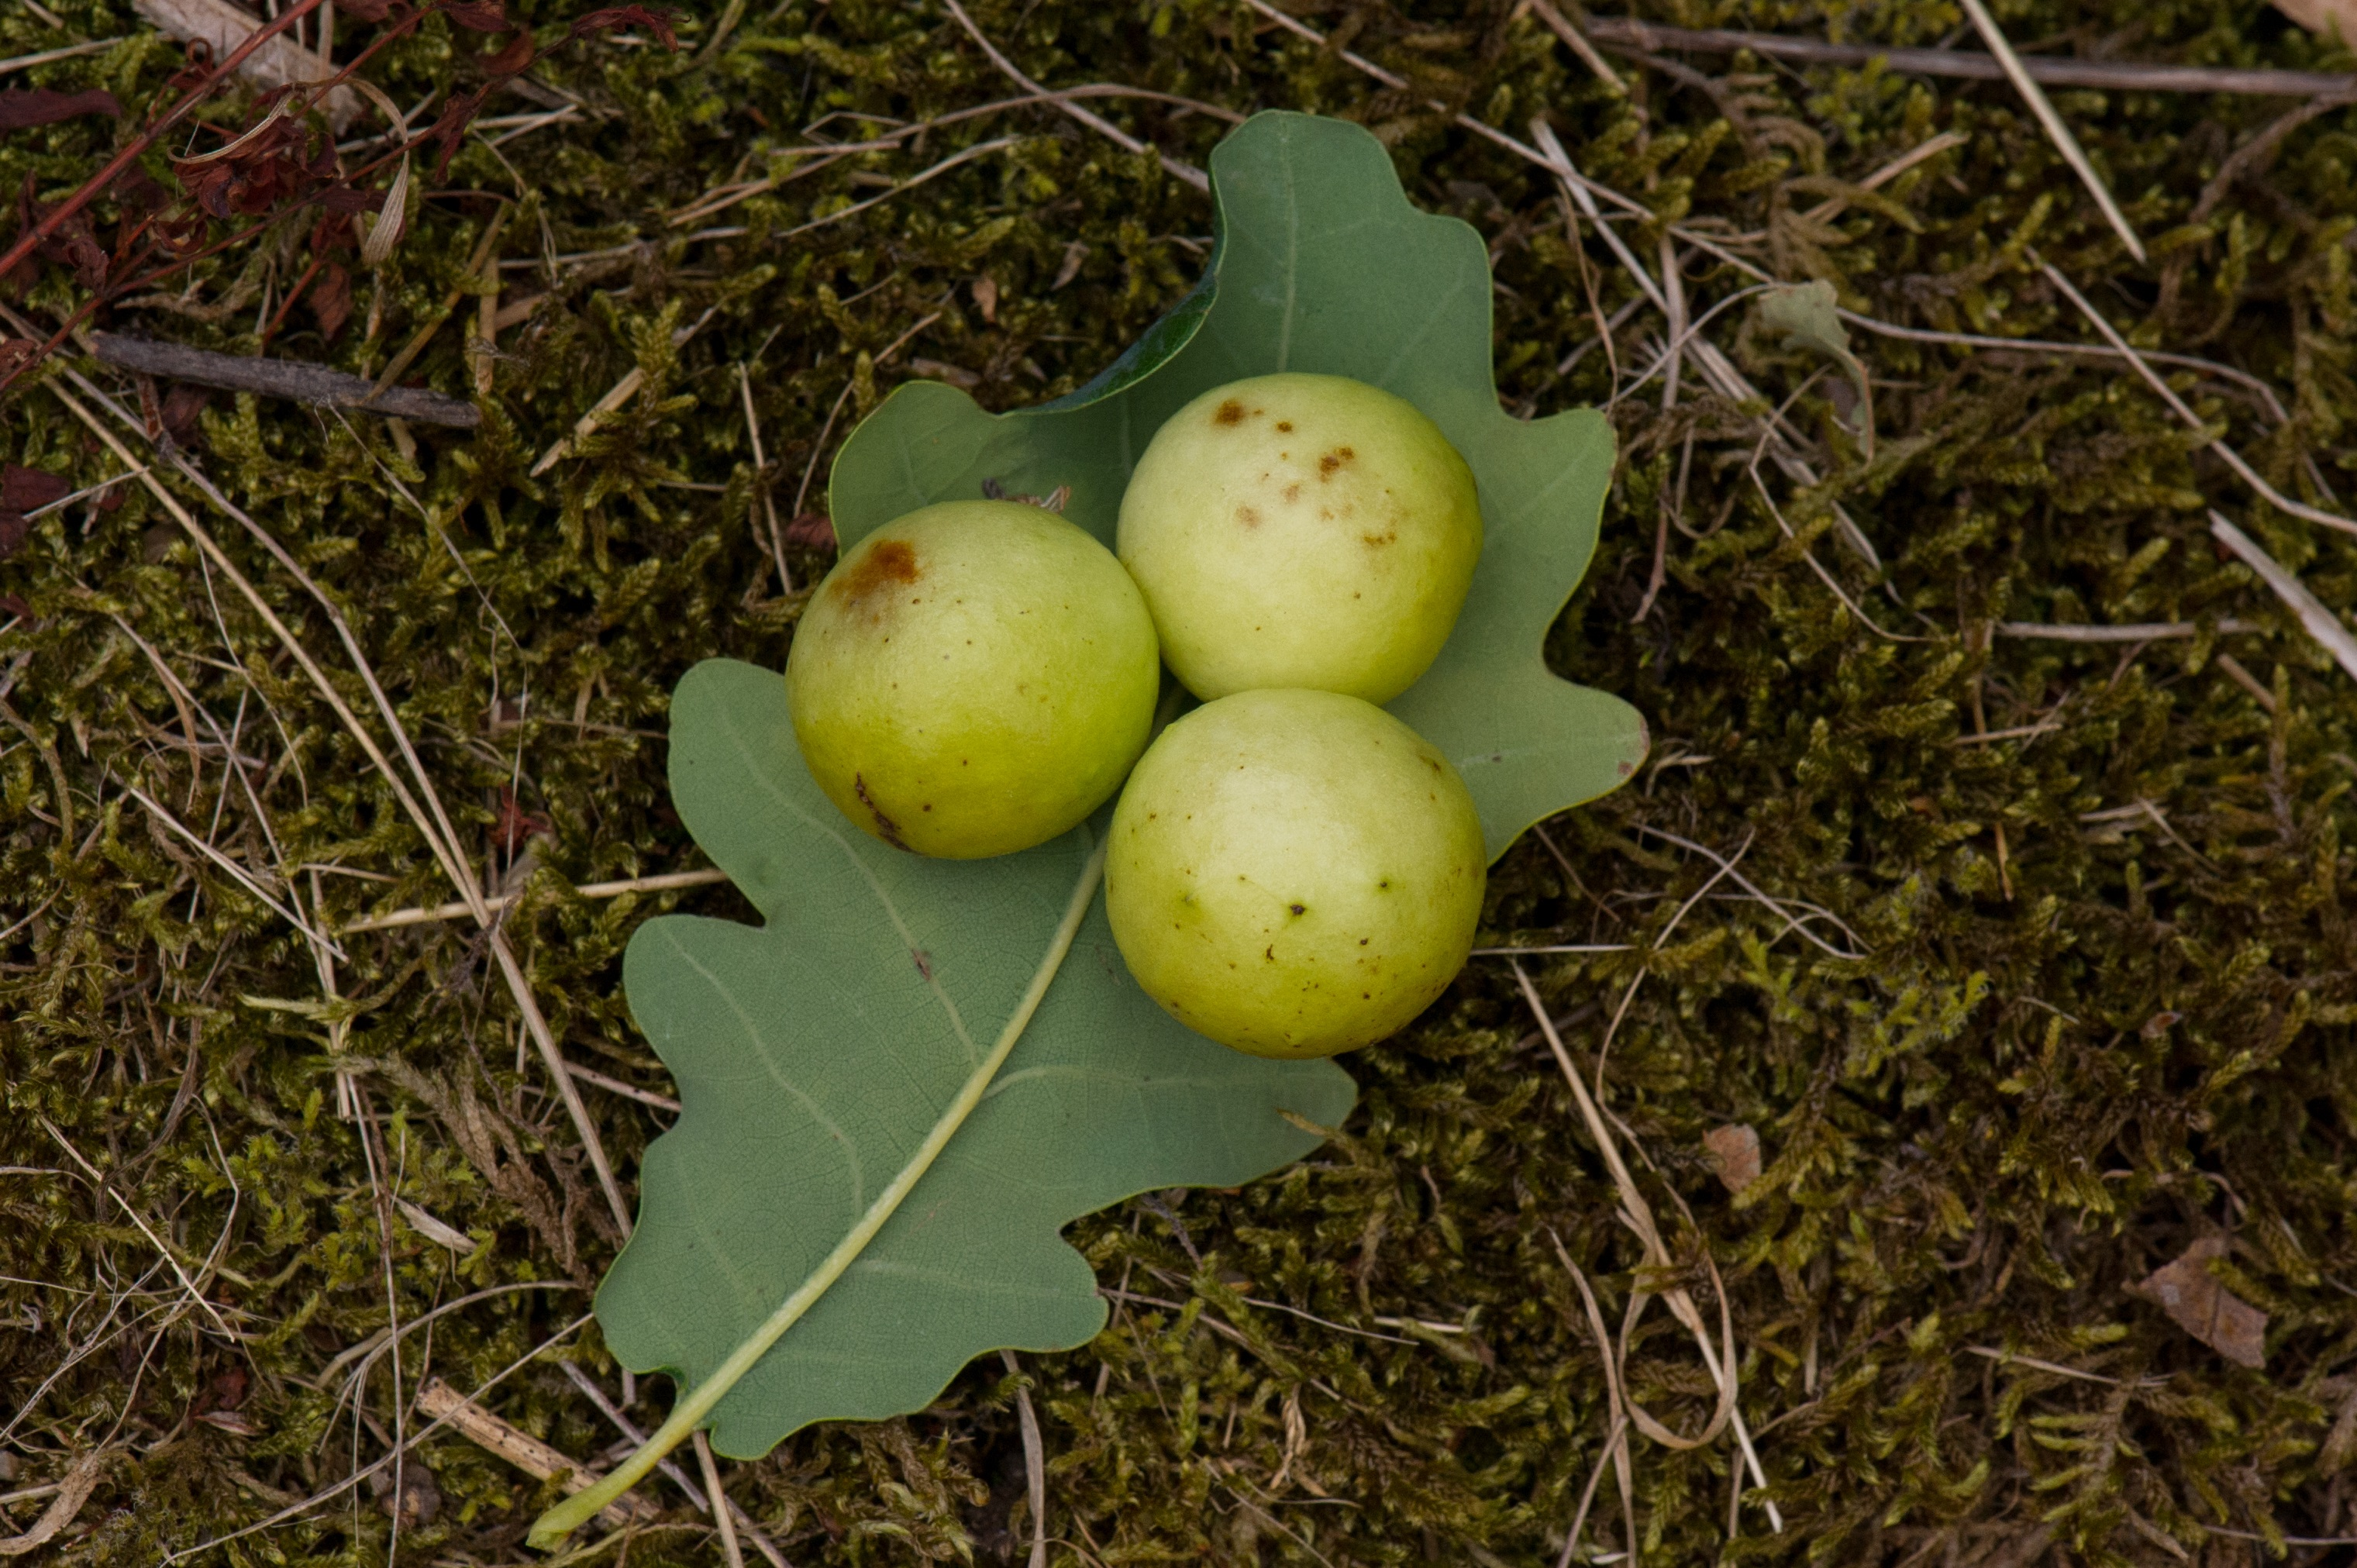 Vepser: Cynips quercusfolii.